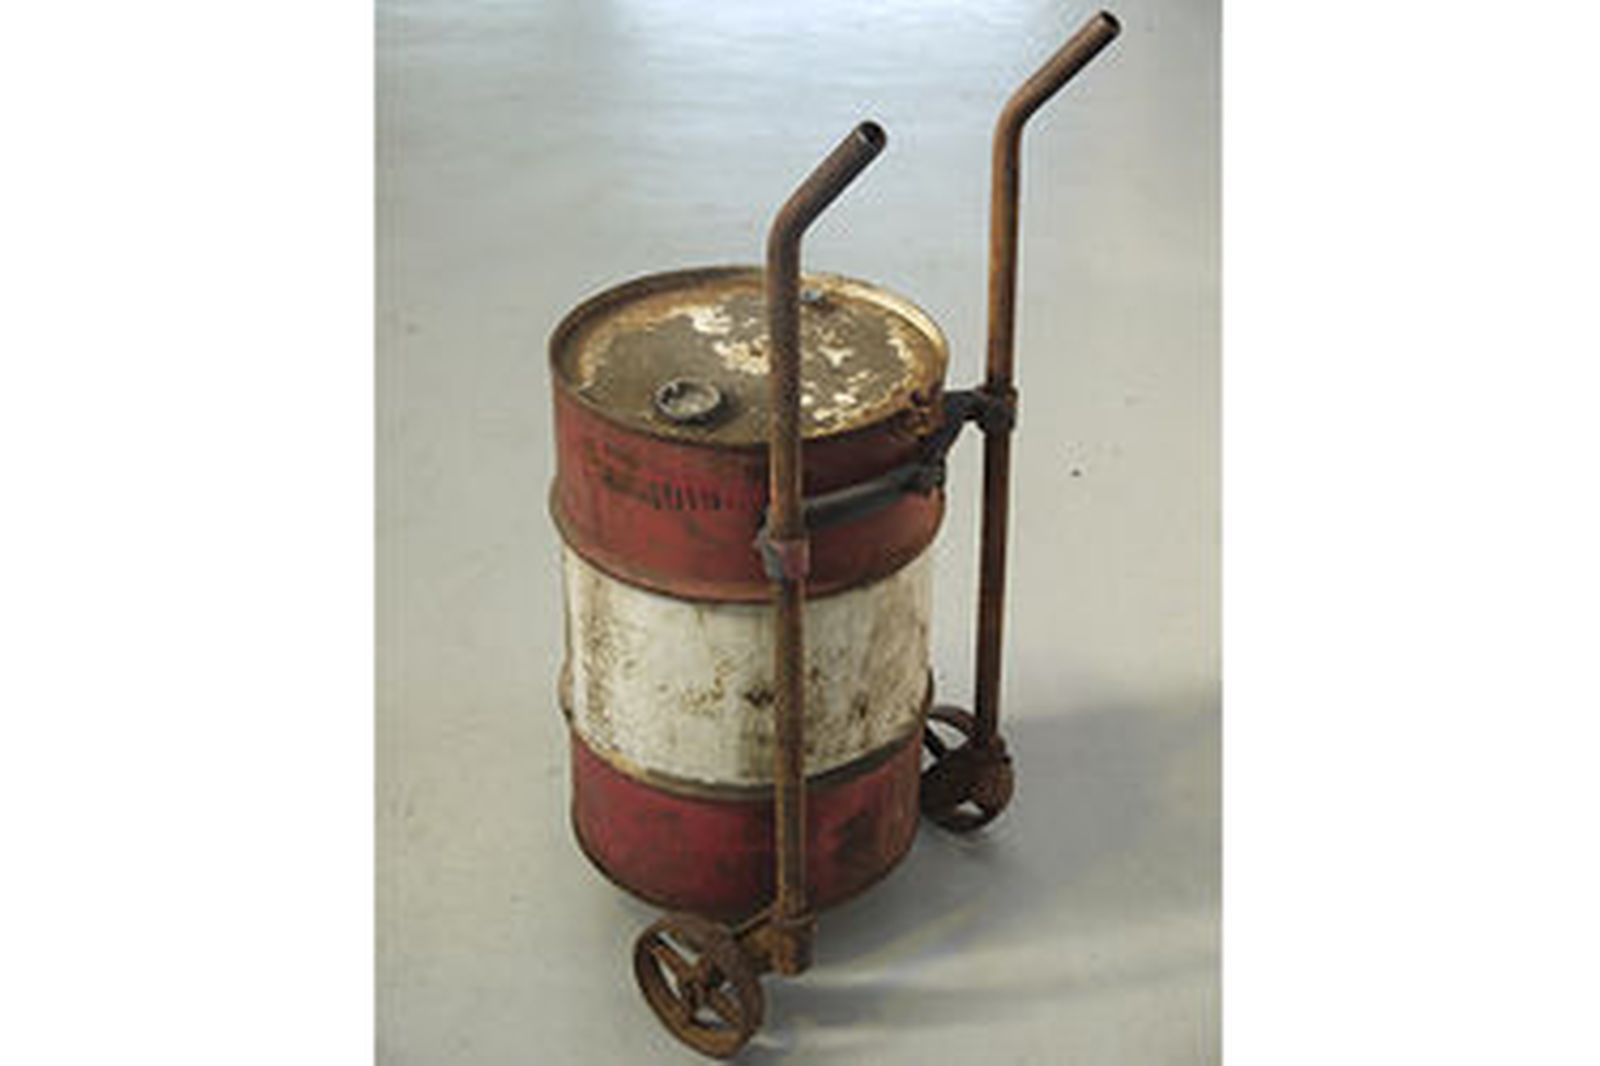 Online Car Auction >> Sold: Oil Drums x 3 - 1 x Caltex on Stand, 1 x Caltex on Trolley & 1 x Castrol with hand pump ...